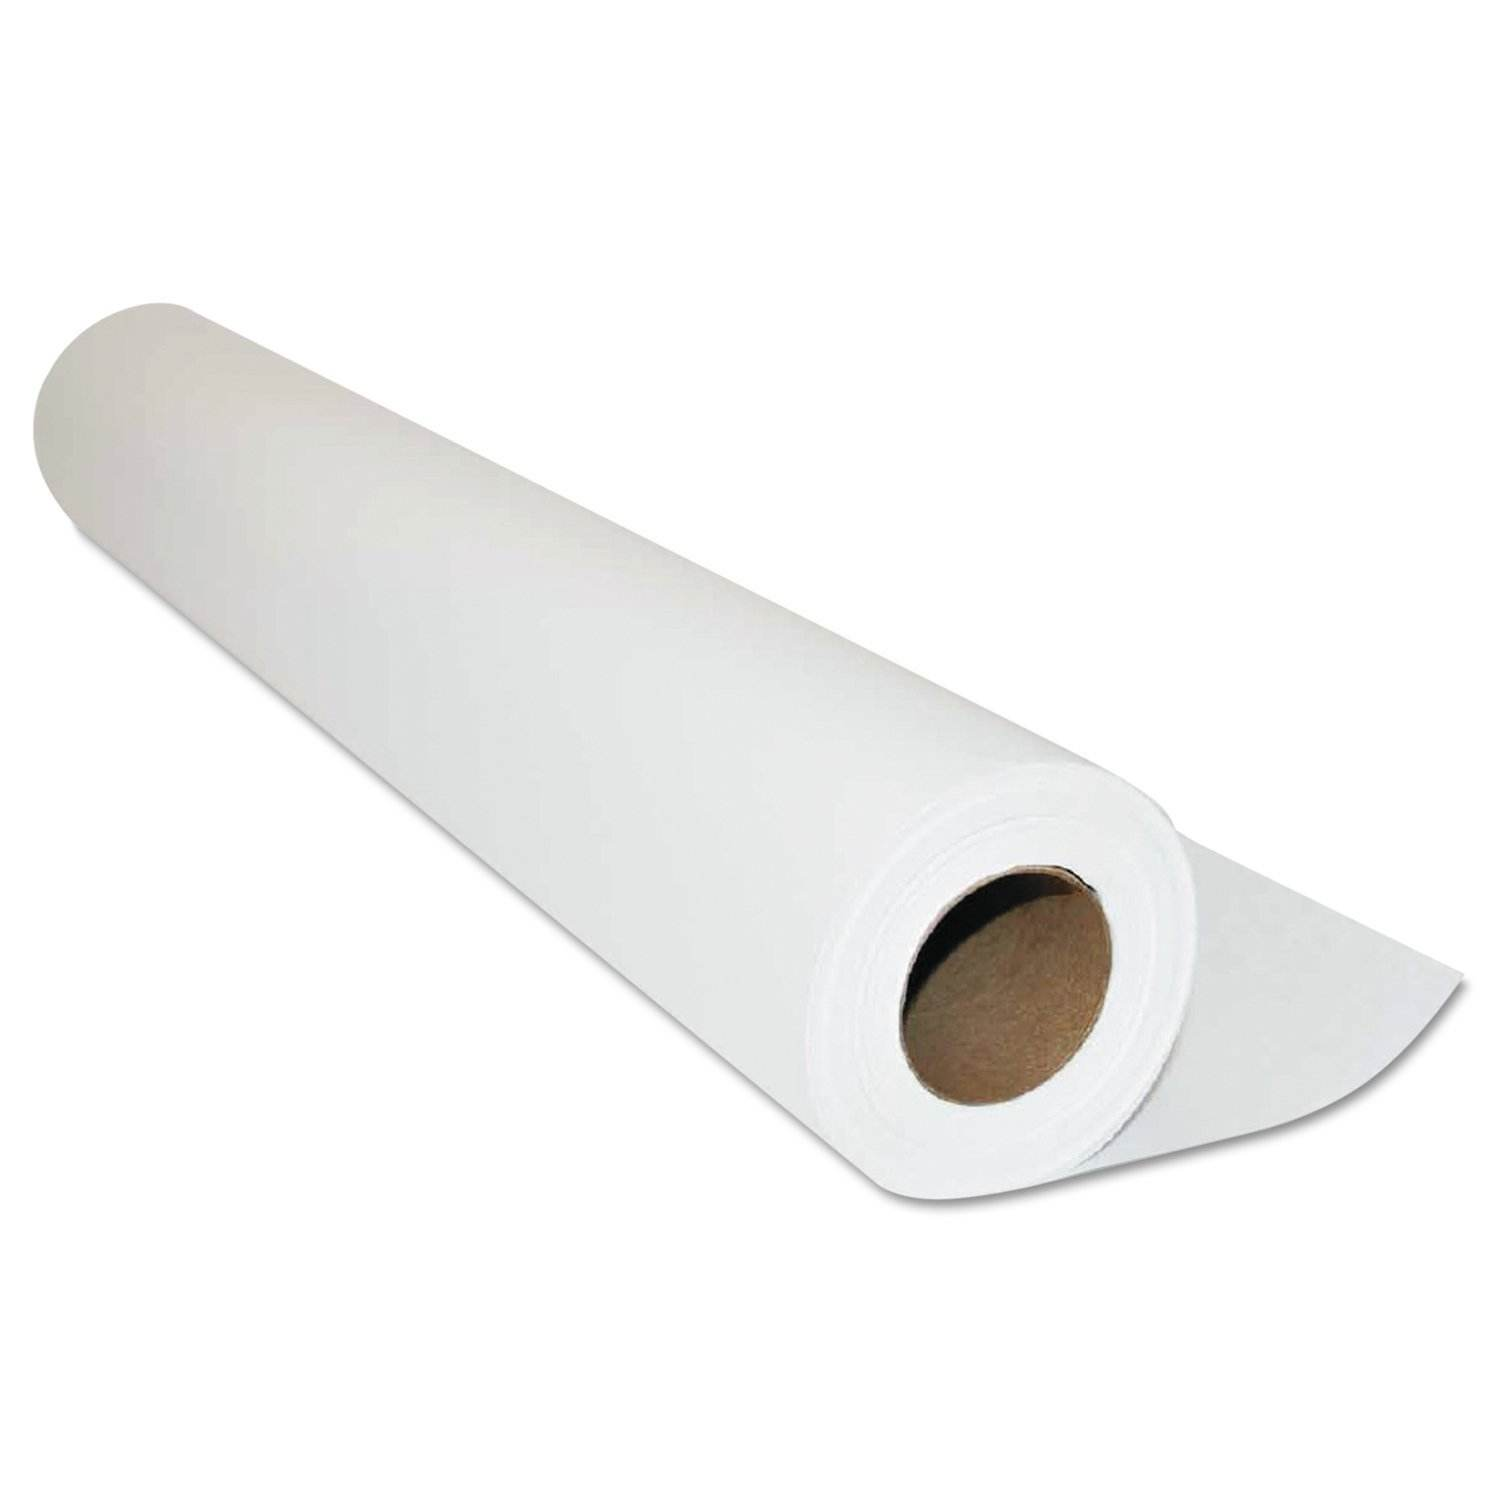 Exam Paper Roll/Disposable/Smooth Paper/18 Inch x 225Feet/White/Case of 12